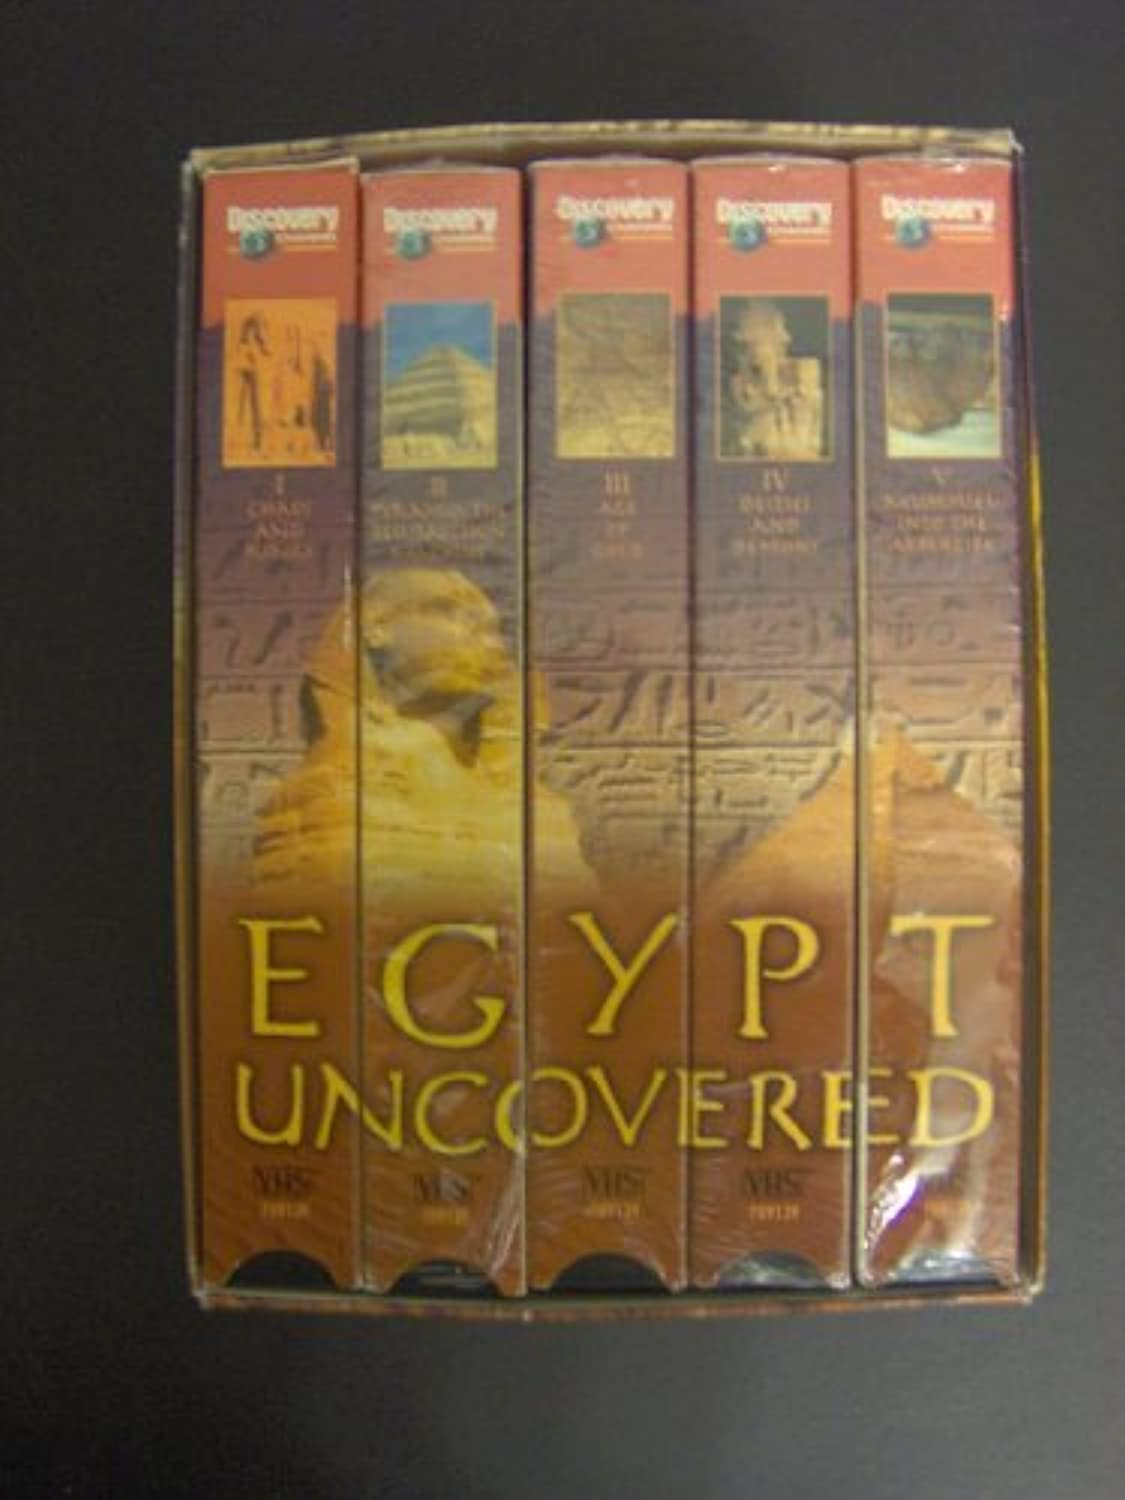 Egypt Uncoverot - Discovery Channel Video by Discovery Channel Video